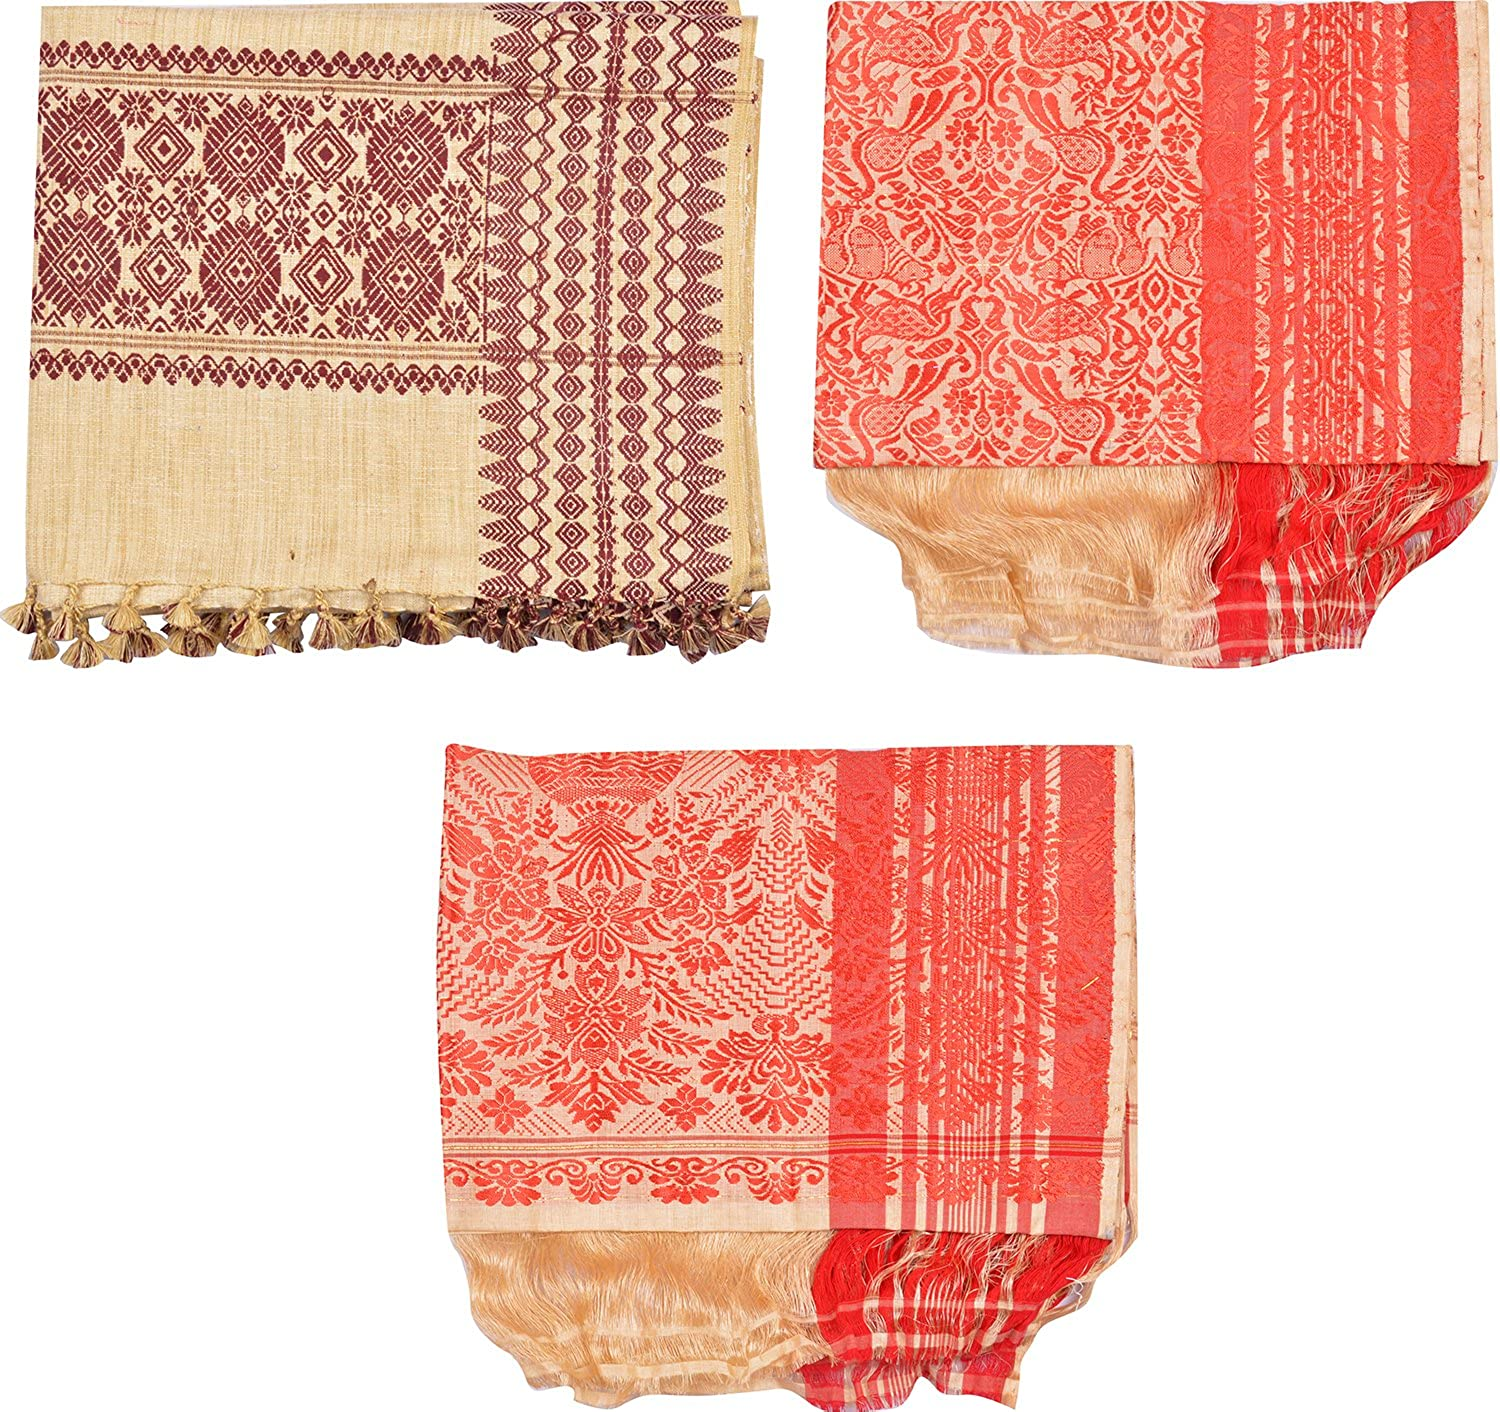 Uparam Muga Gamusa, Adult Scarf Combo of 3 (Multi-Coloured)